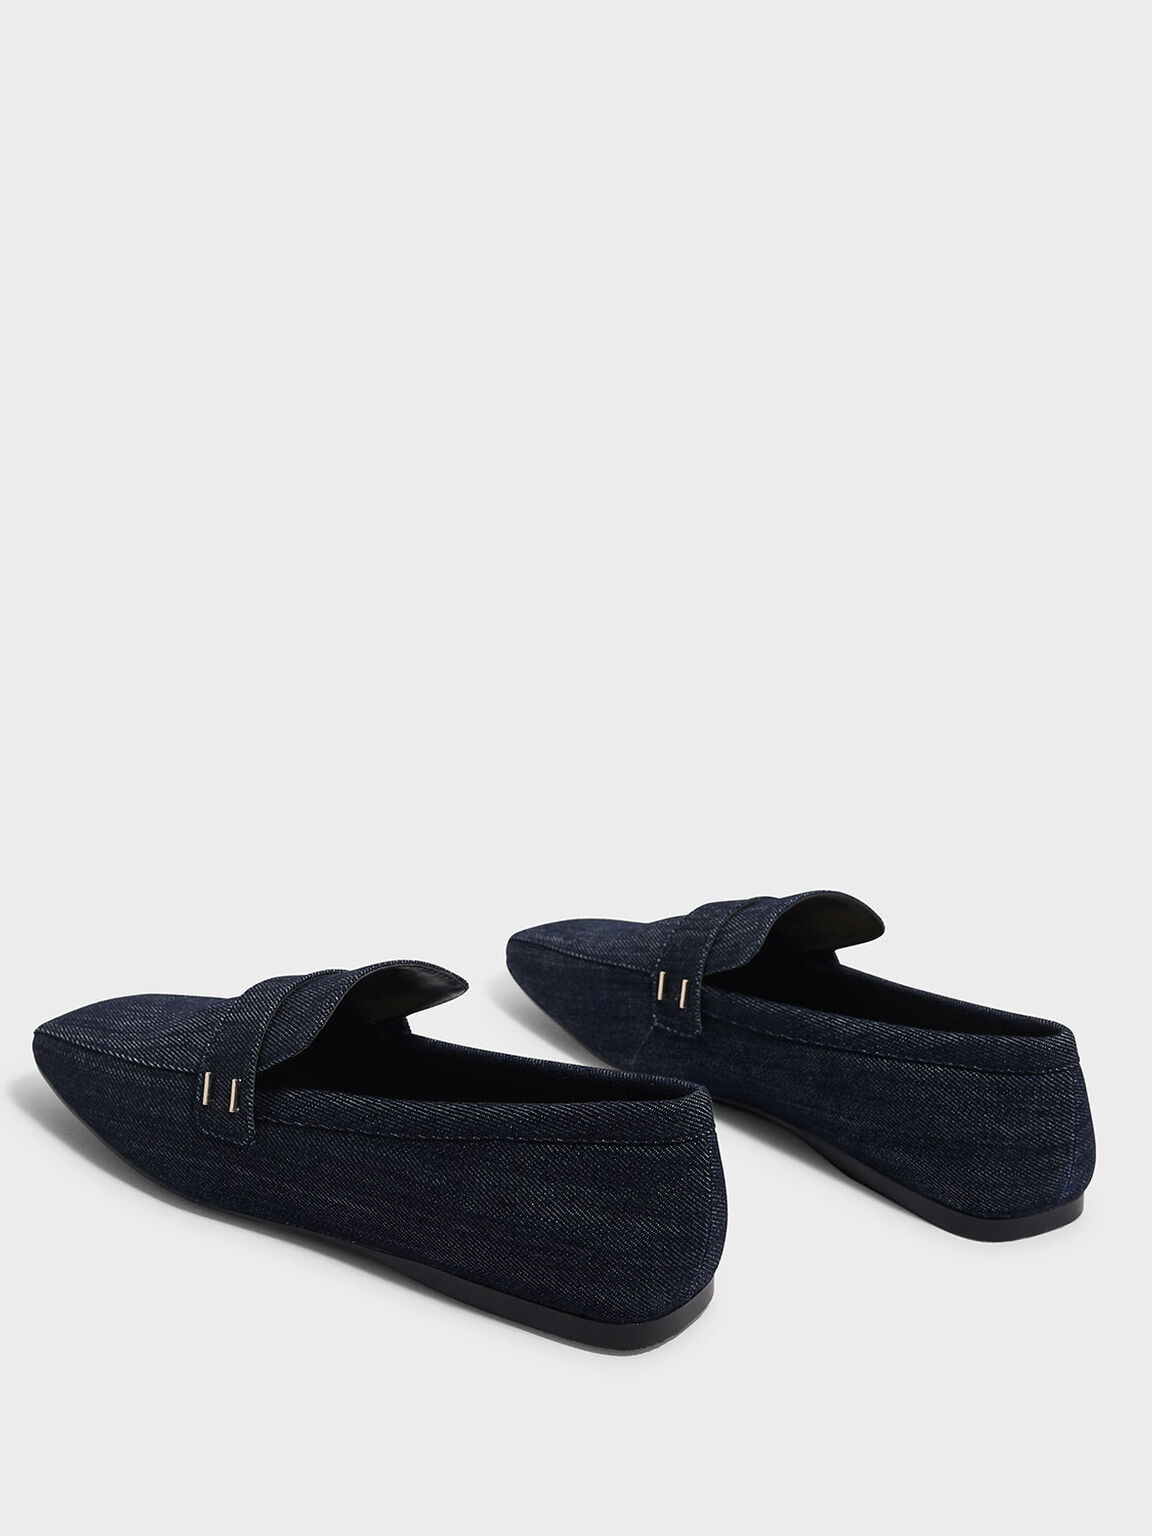 Square Toe Loafers, Blue, hi-res